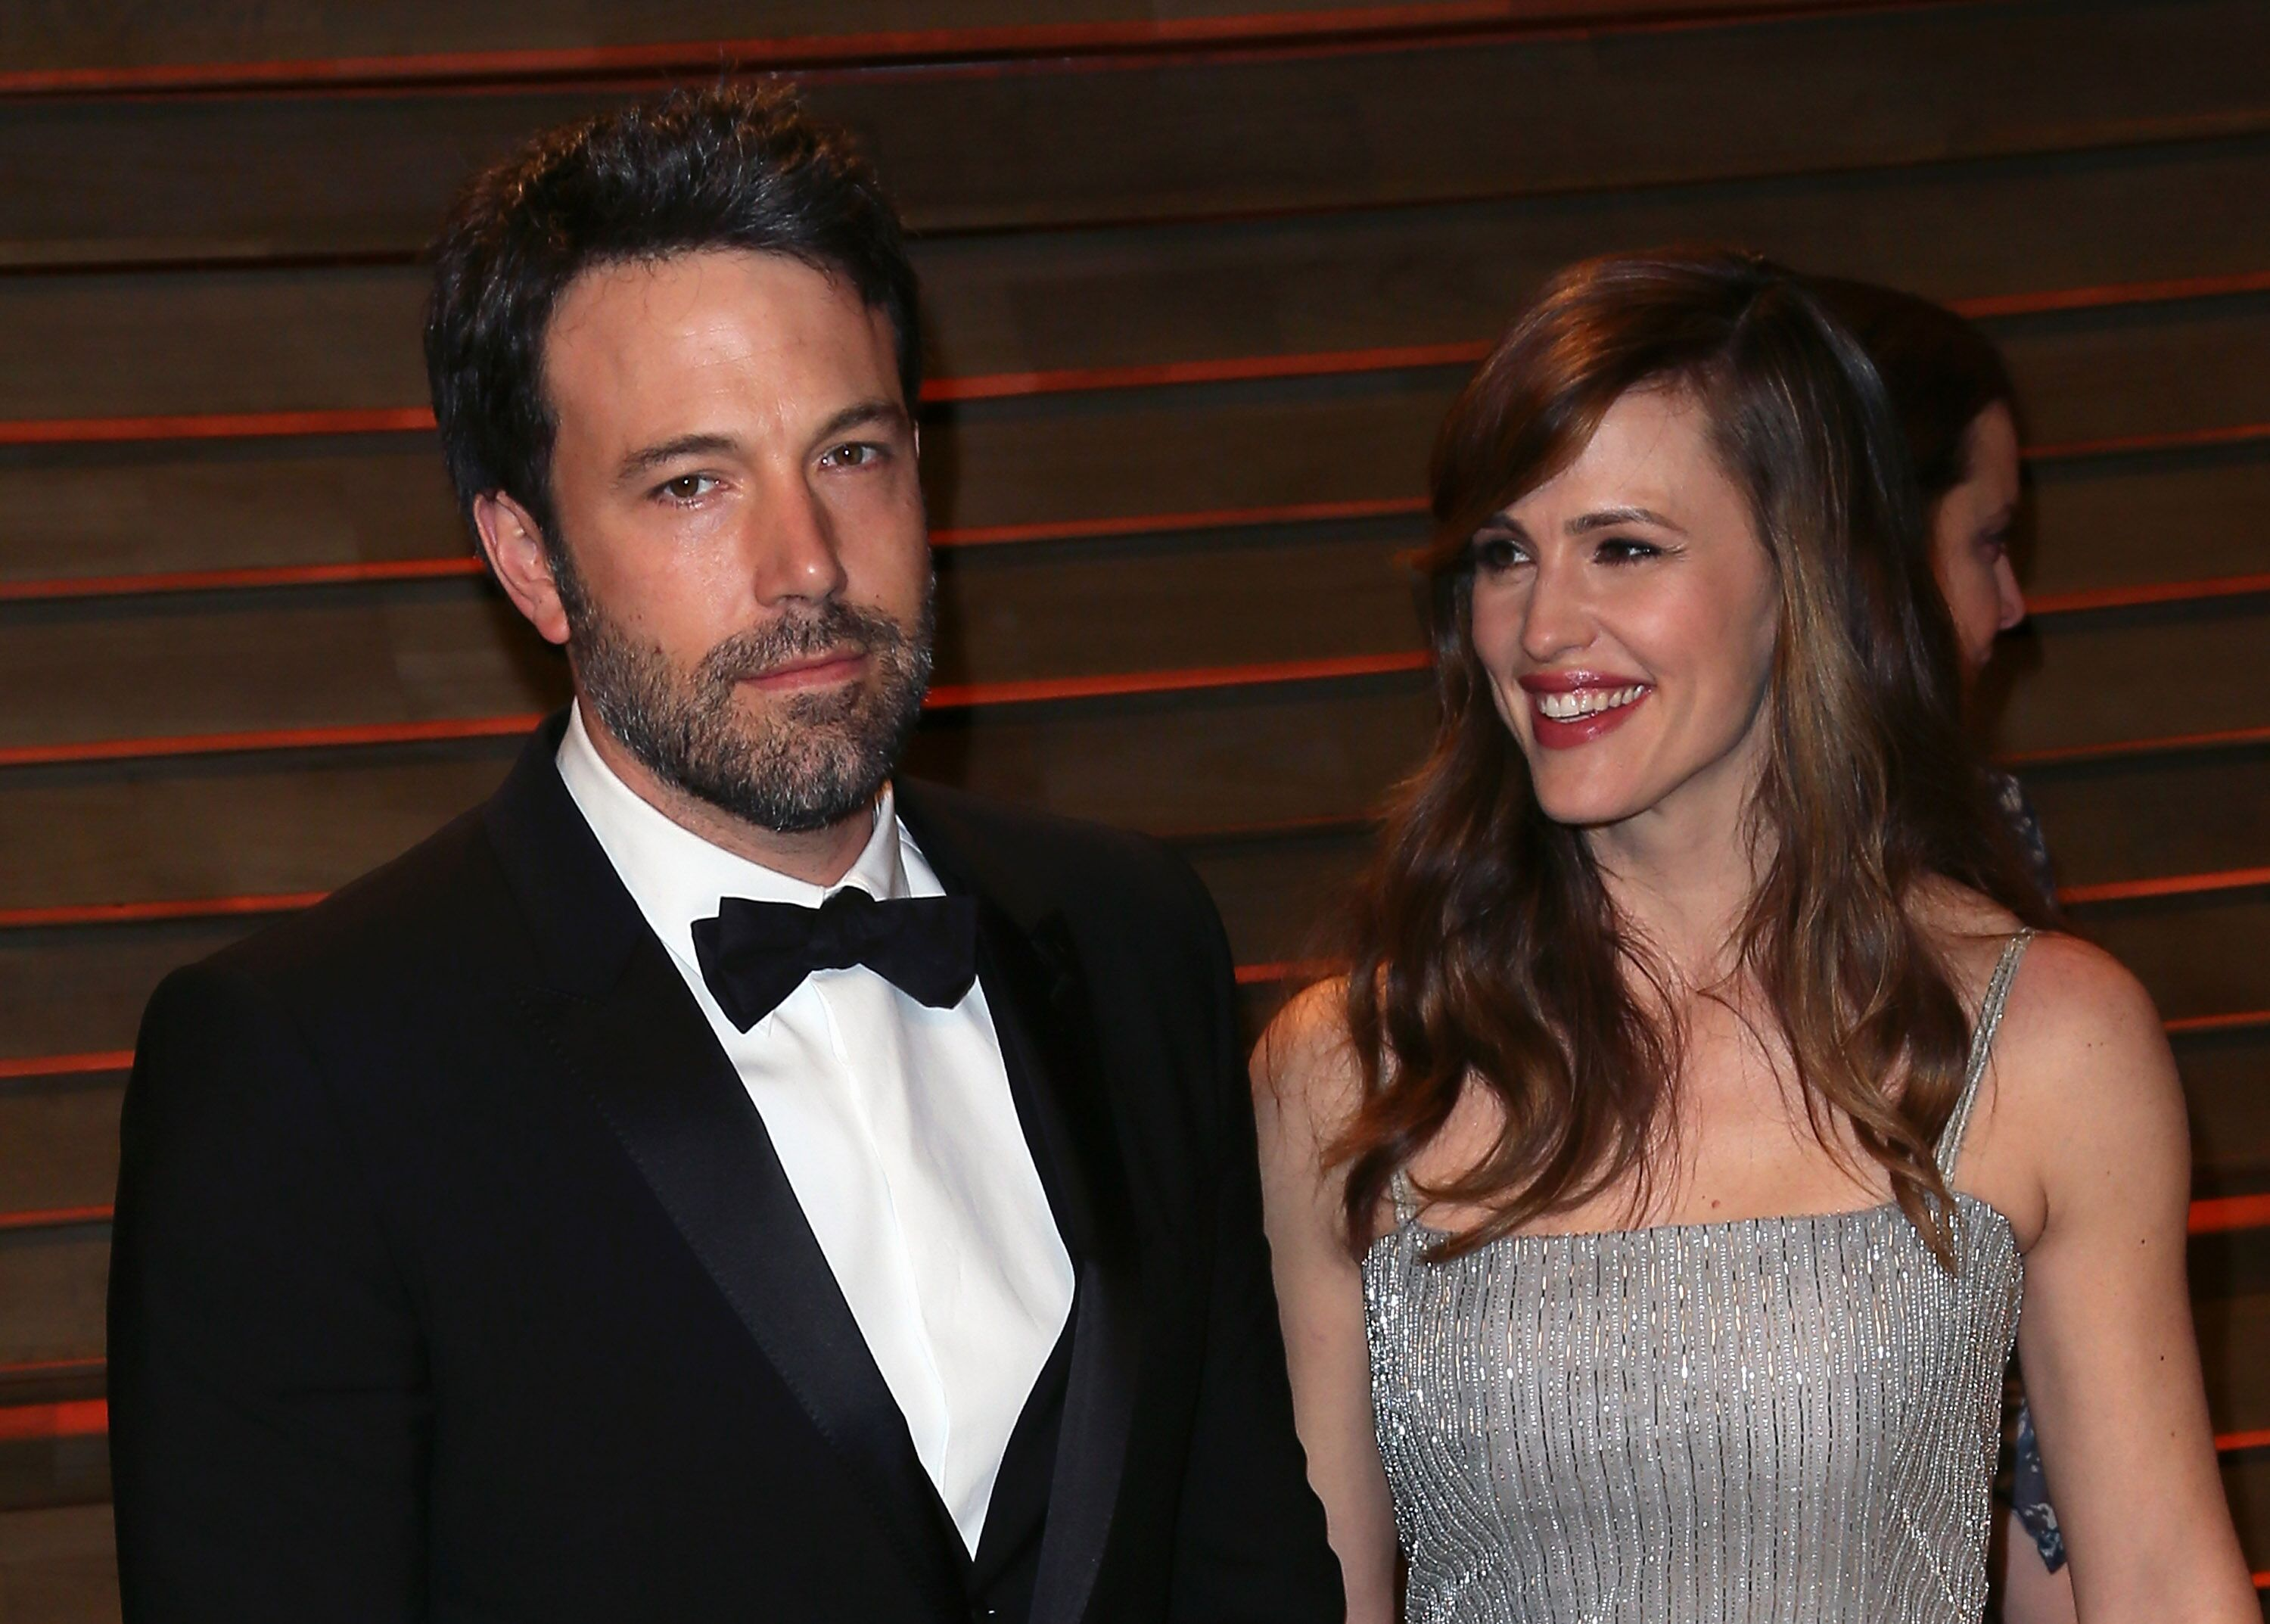 Ben Affleck et Jennifer Garner assister à la Vanity Fair Oscar Party 2014 organisée par Graydon Carter le 2 mars 2014 à West Hollywood, Californie. | Photo : Getty Images